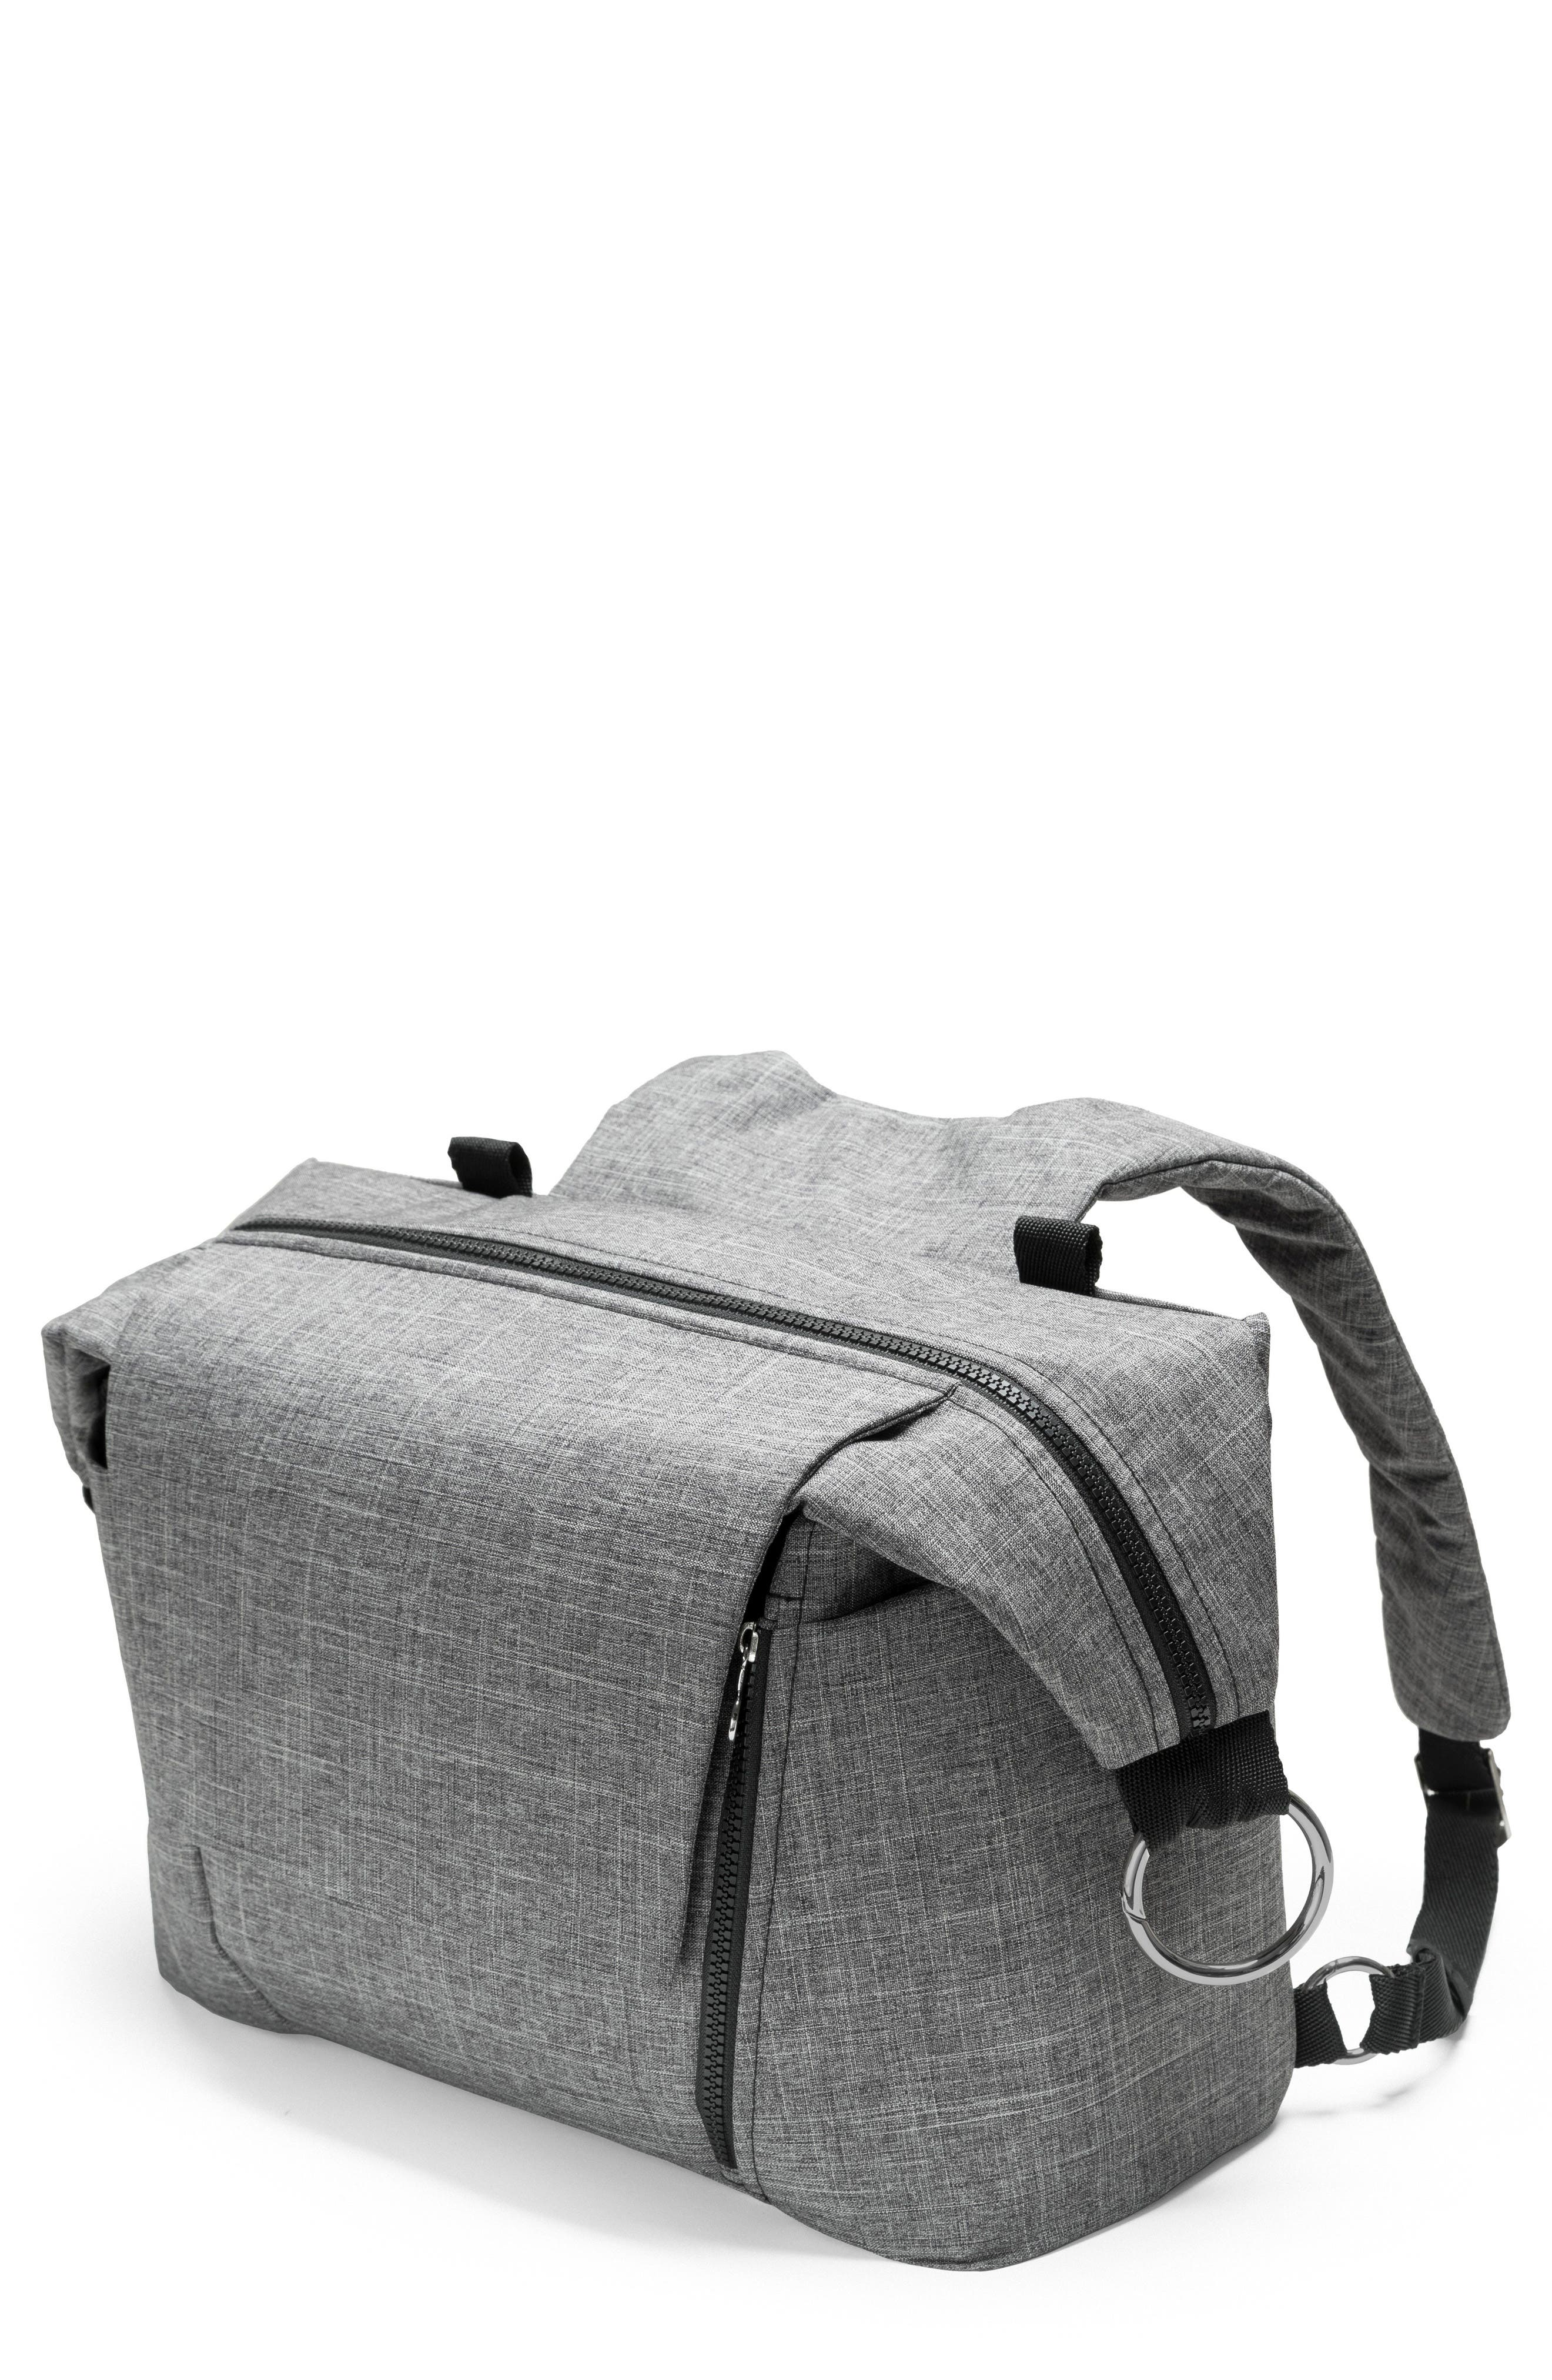 Alternate Image 1 Selected - Stokke Changing Diaper Bag